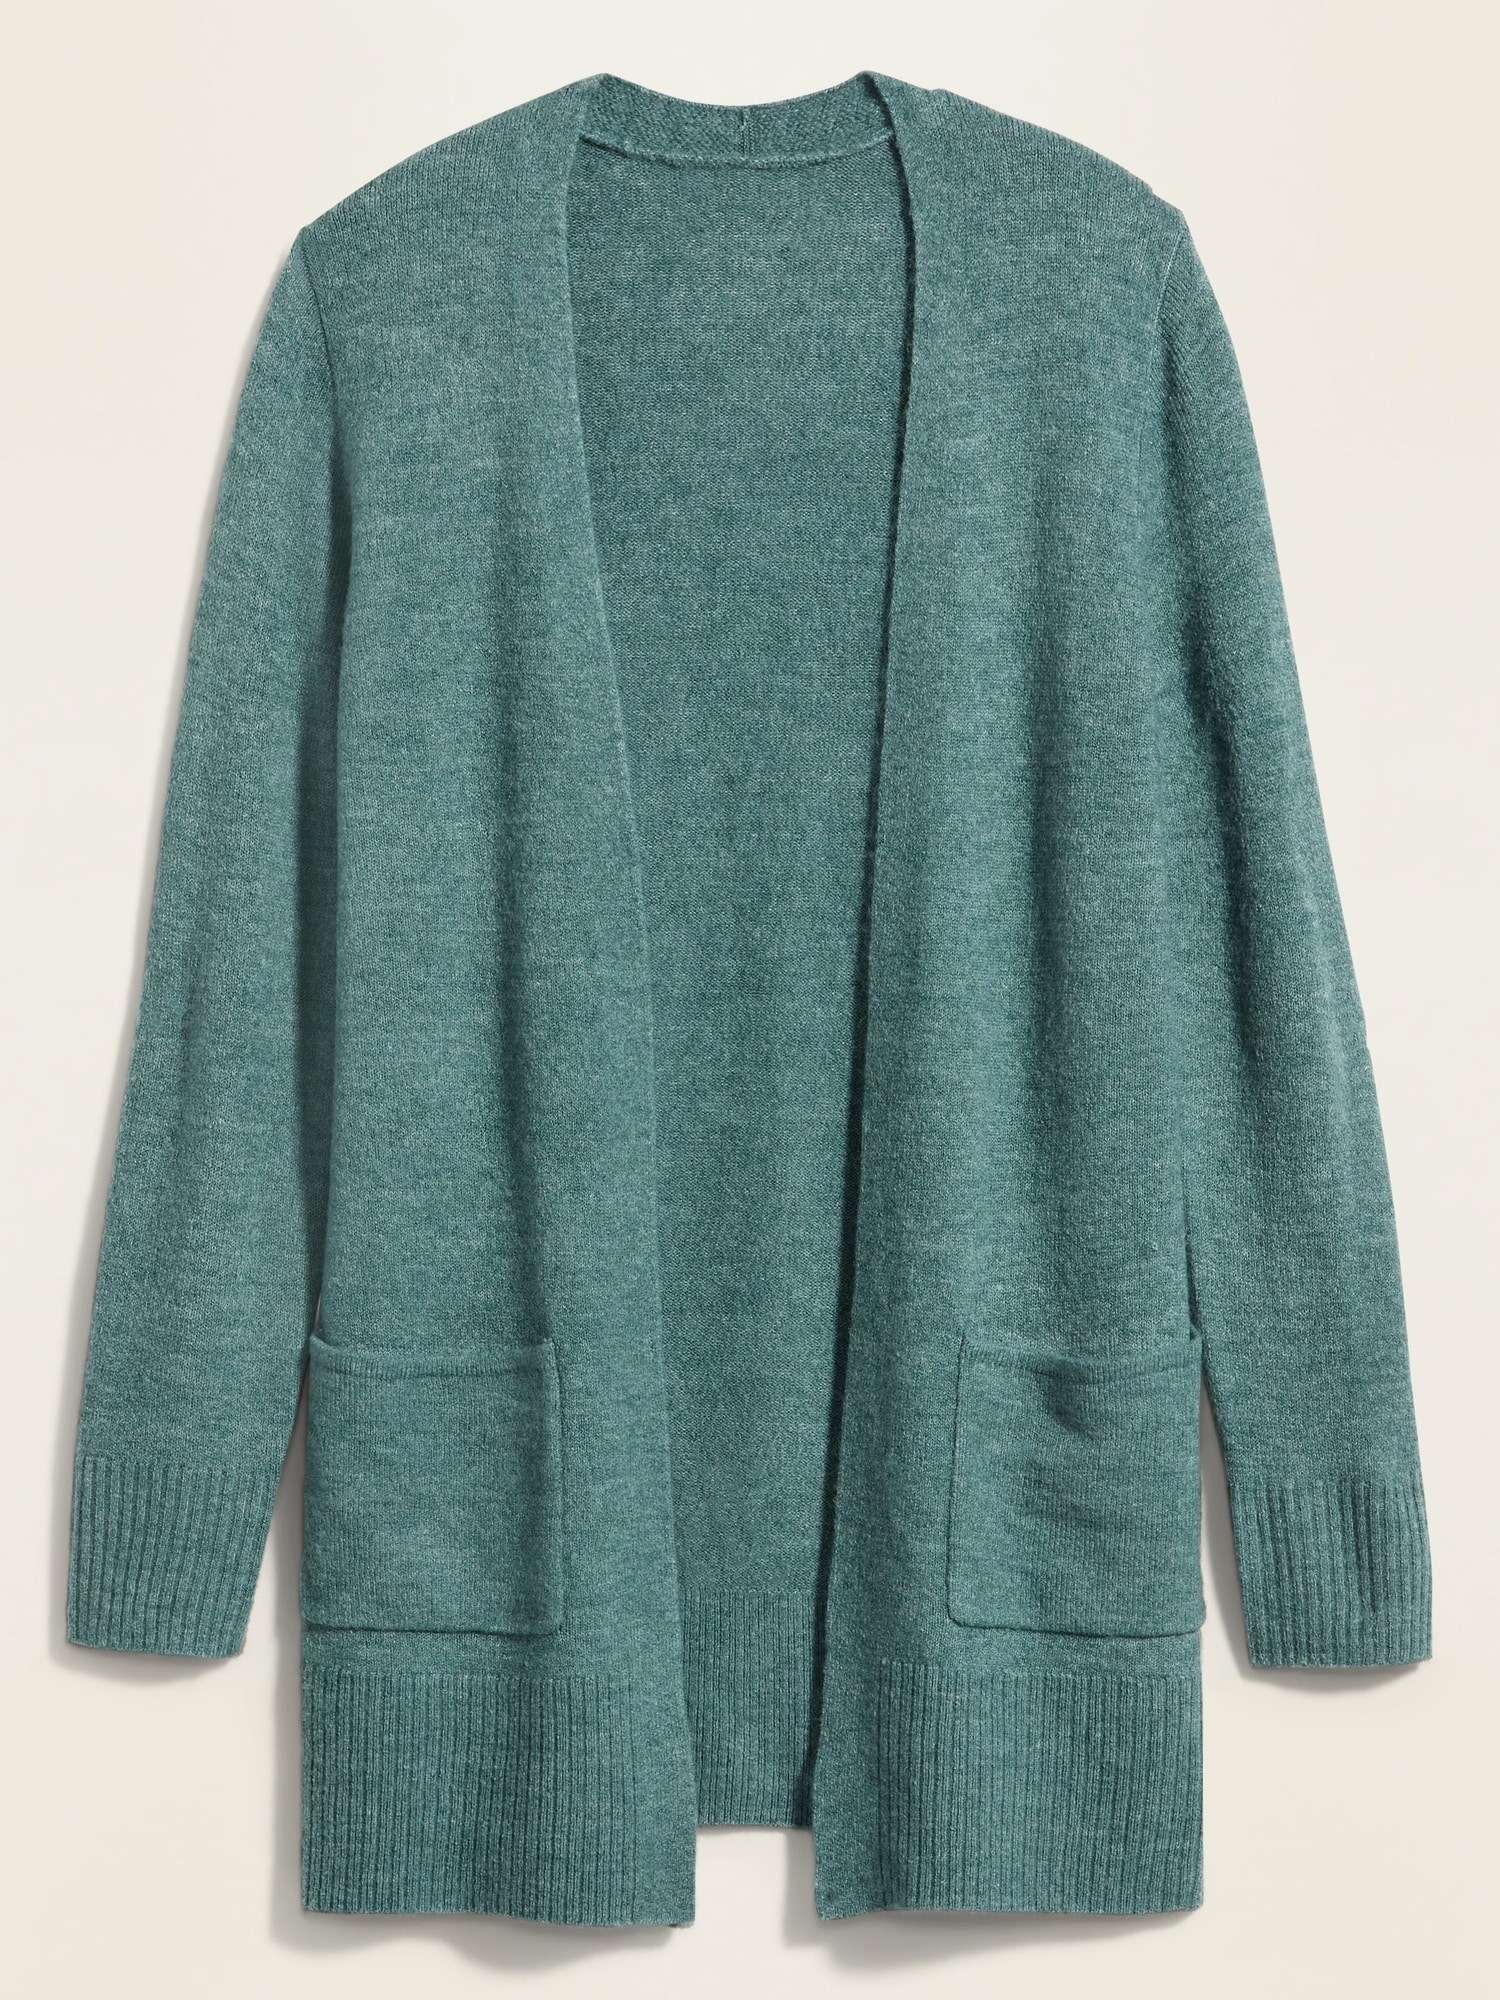 the long cardigan in a muted teal with two front pockets